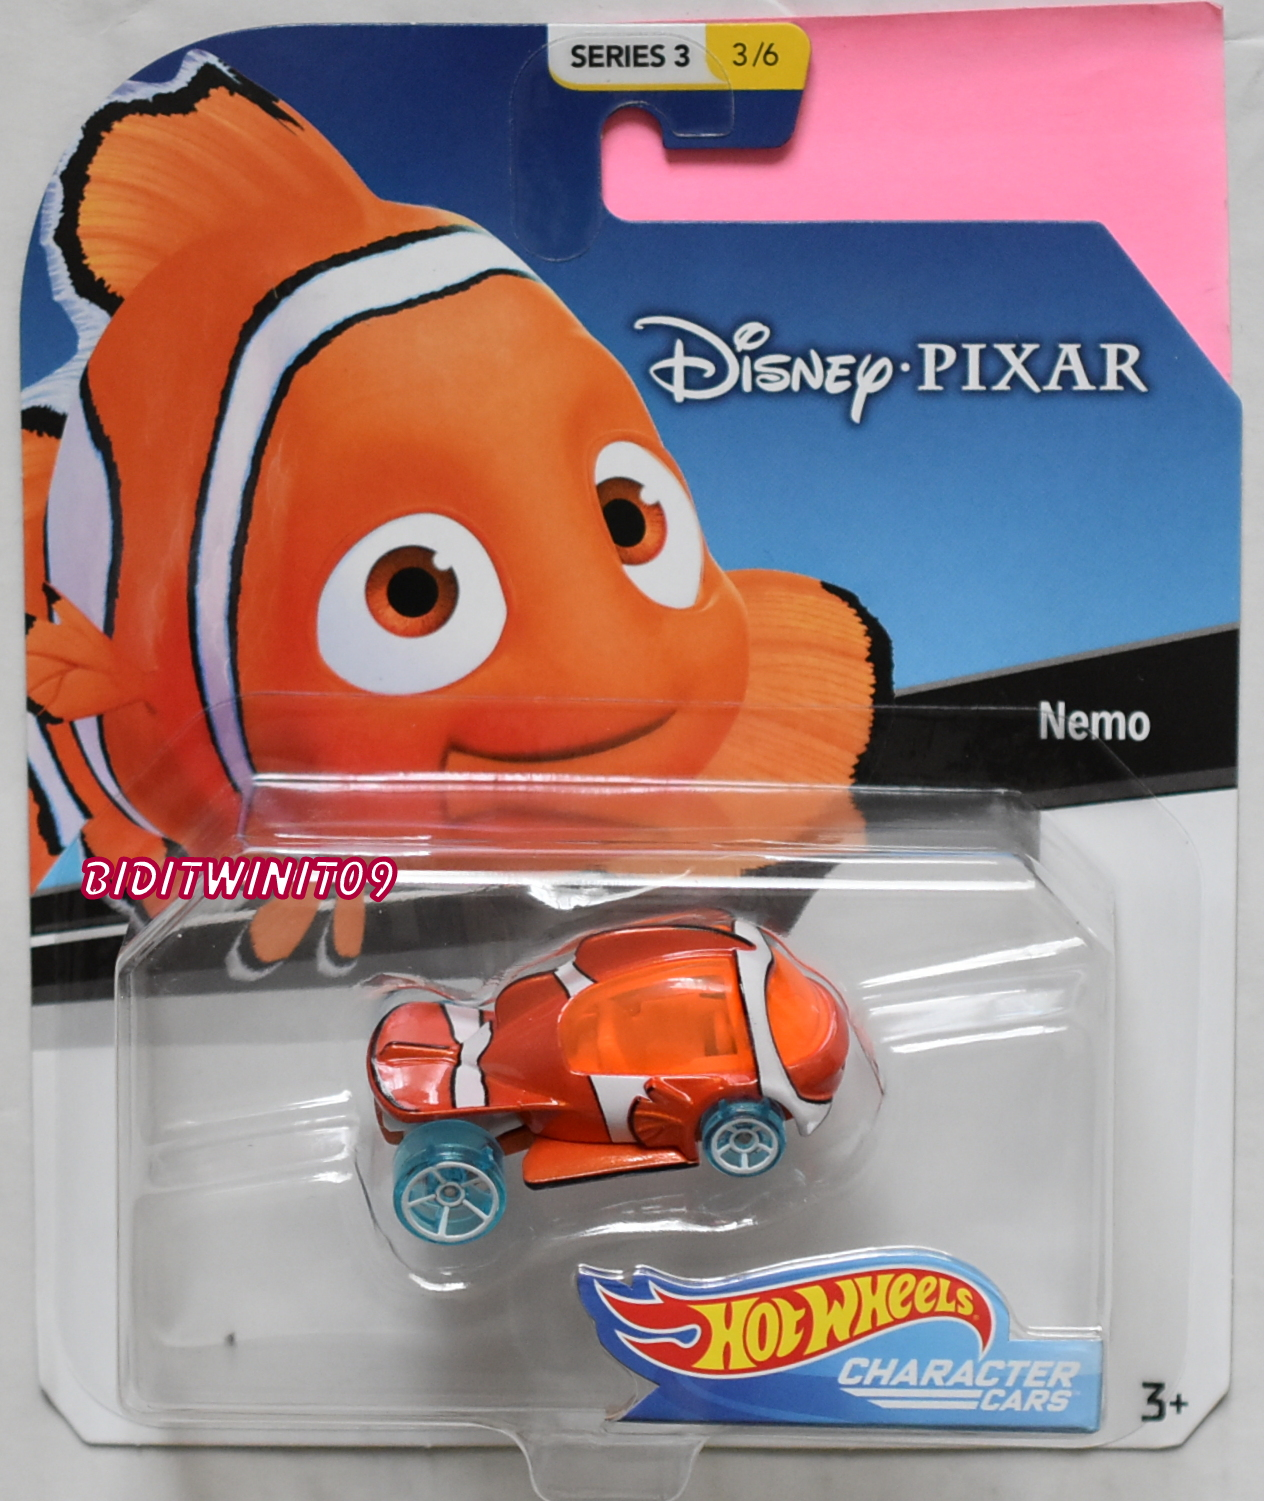 HOT WHEELS DISNEY SERIES 3 NEMO #3/6 CHARACTER CARS